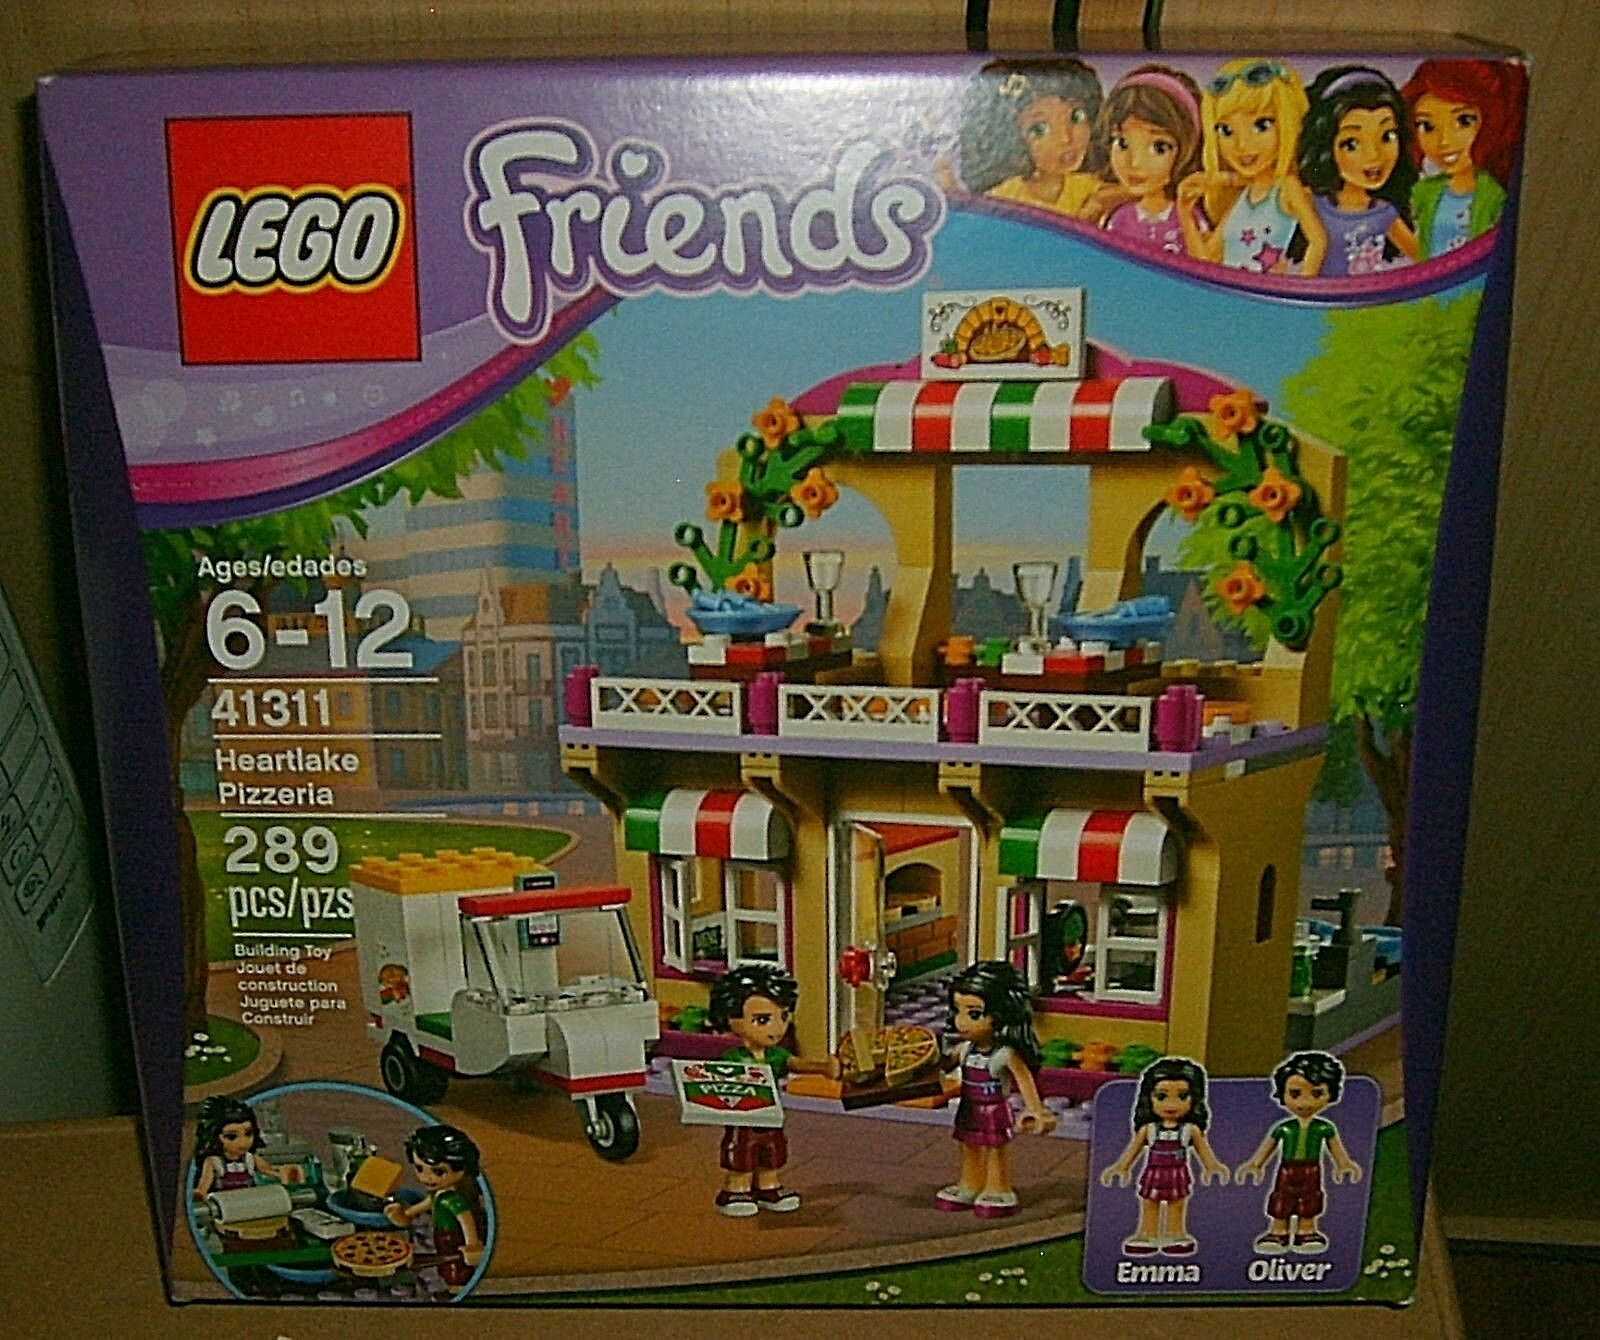 Lego Friends Heartlake Pizzeria Pcs Nqzlbg5416 Lego Complete Sets